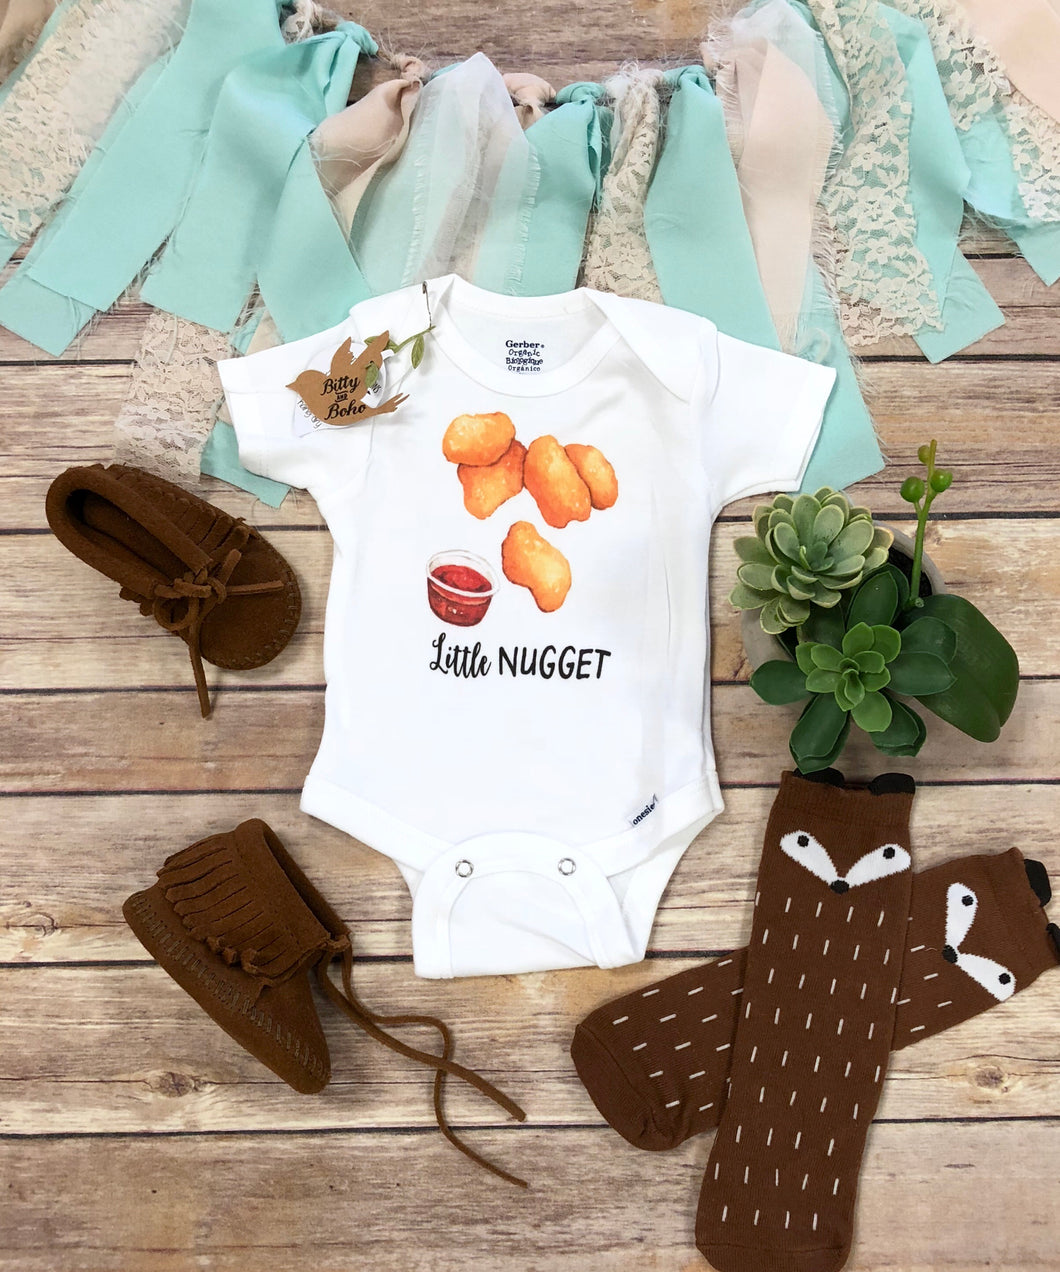 Little Nugget - Chicken Nugget Baby Onesie®